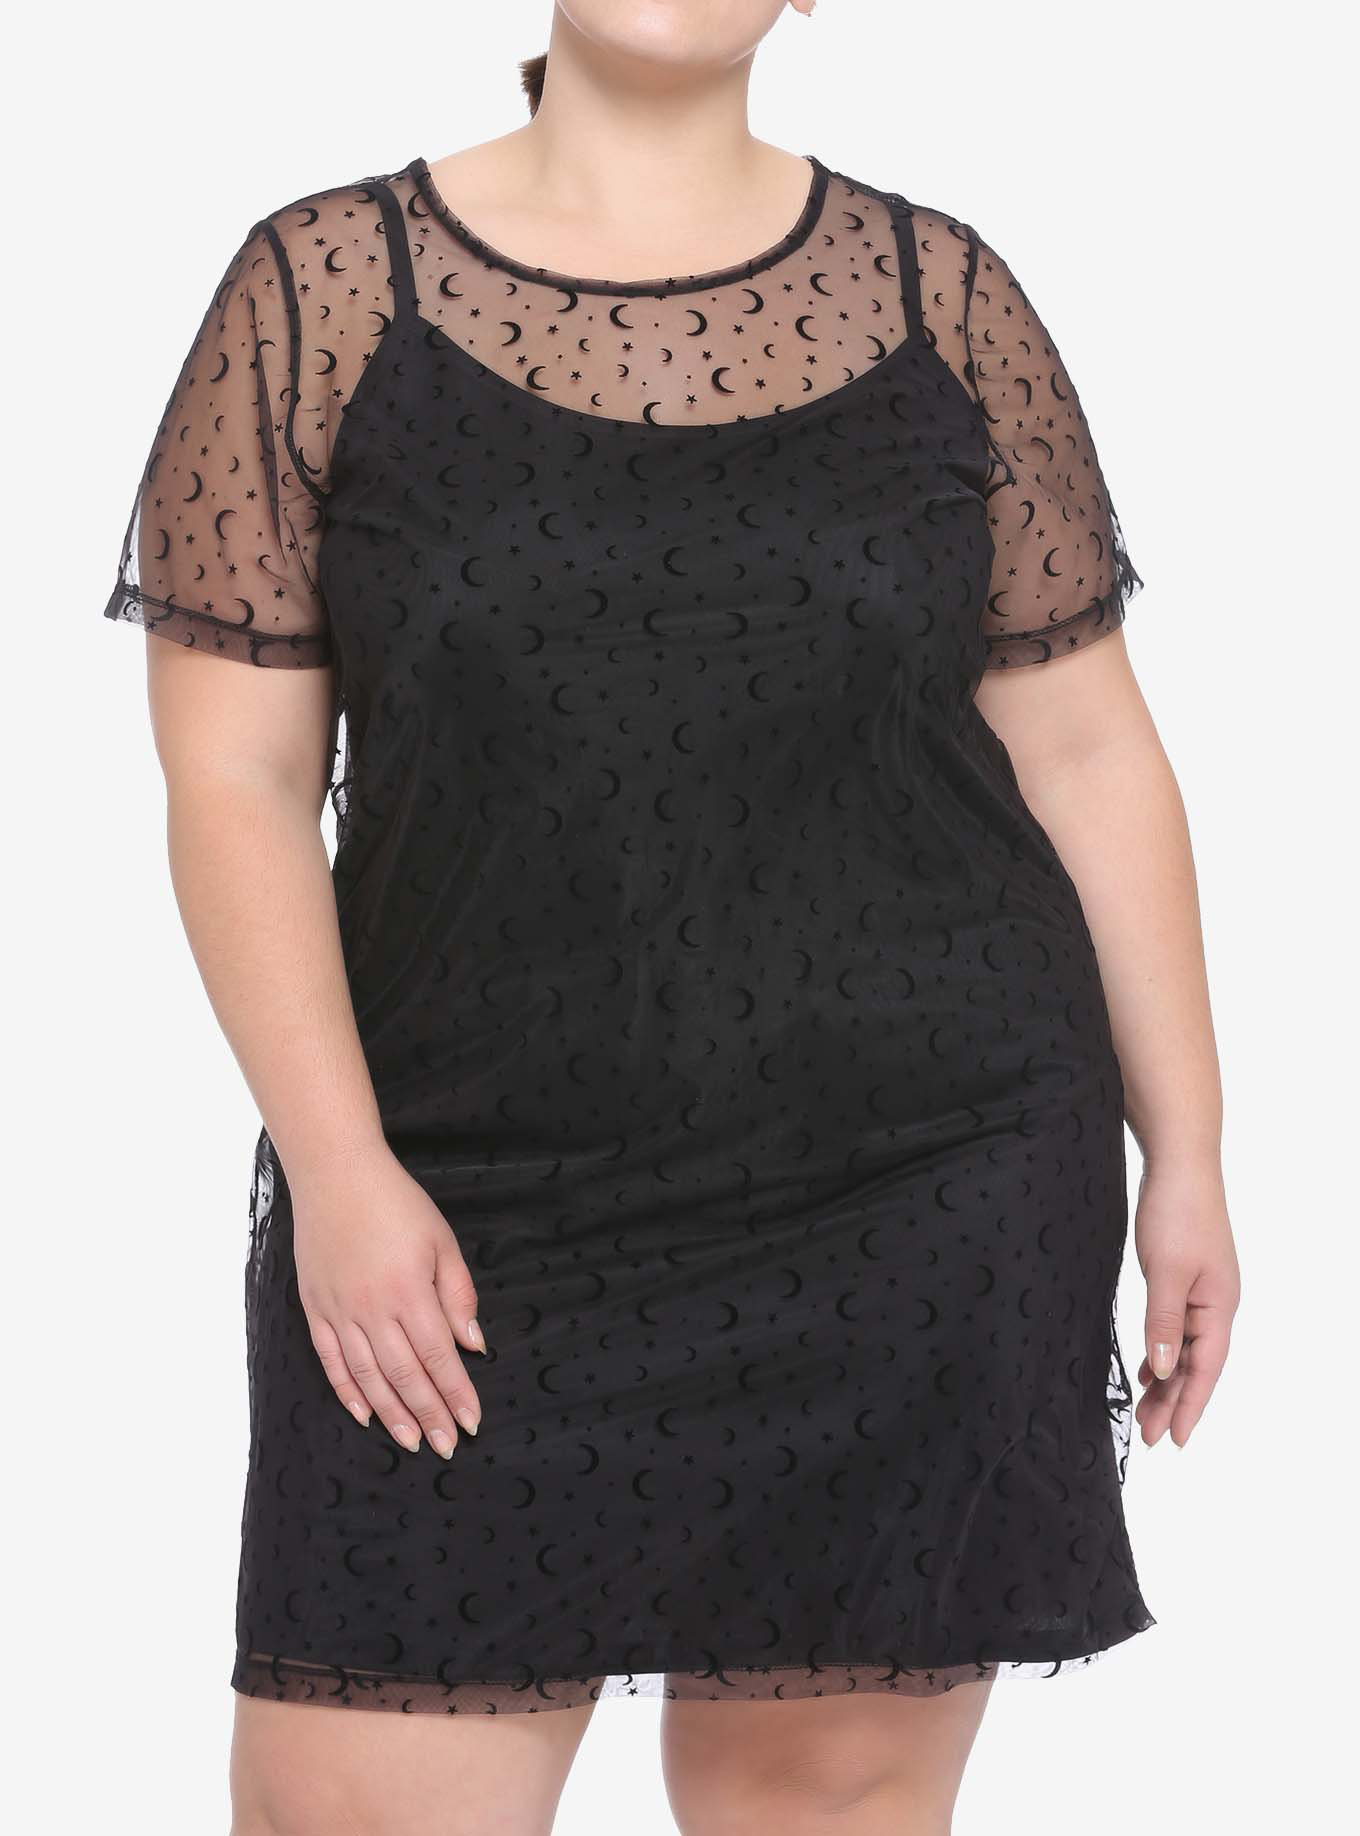 Model wearing black dress with sheer moon-and-star overlay